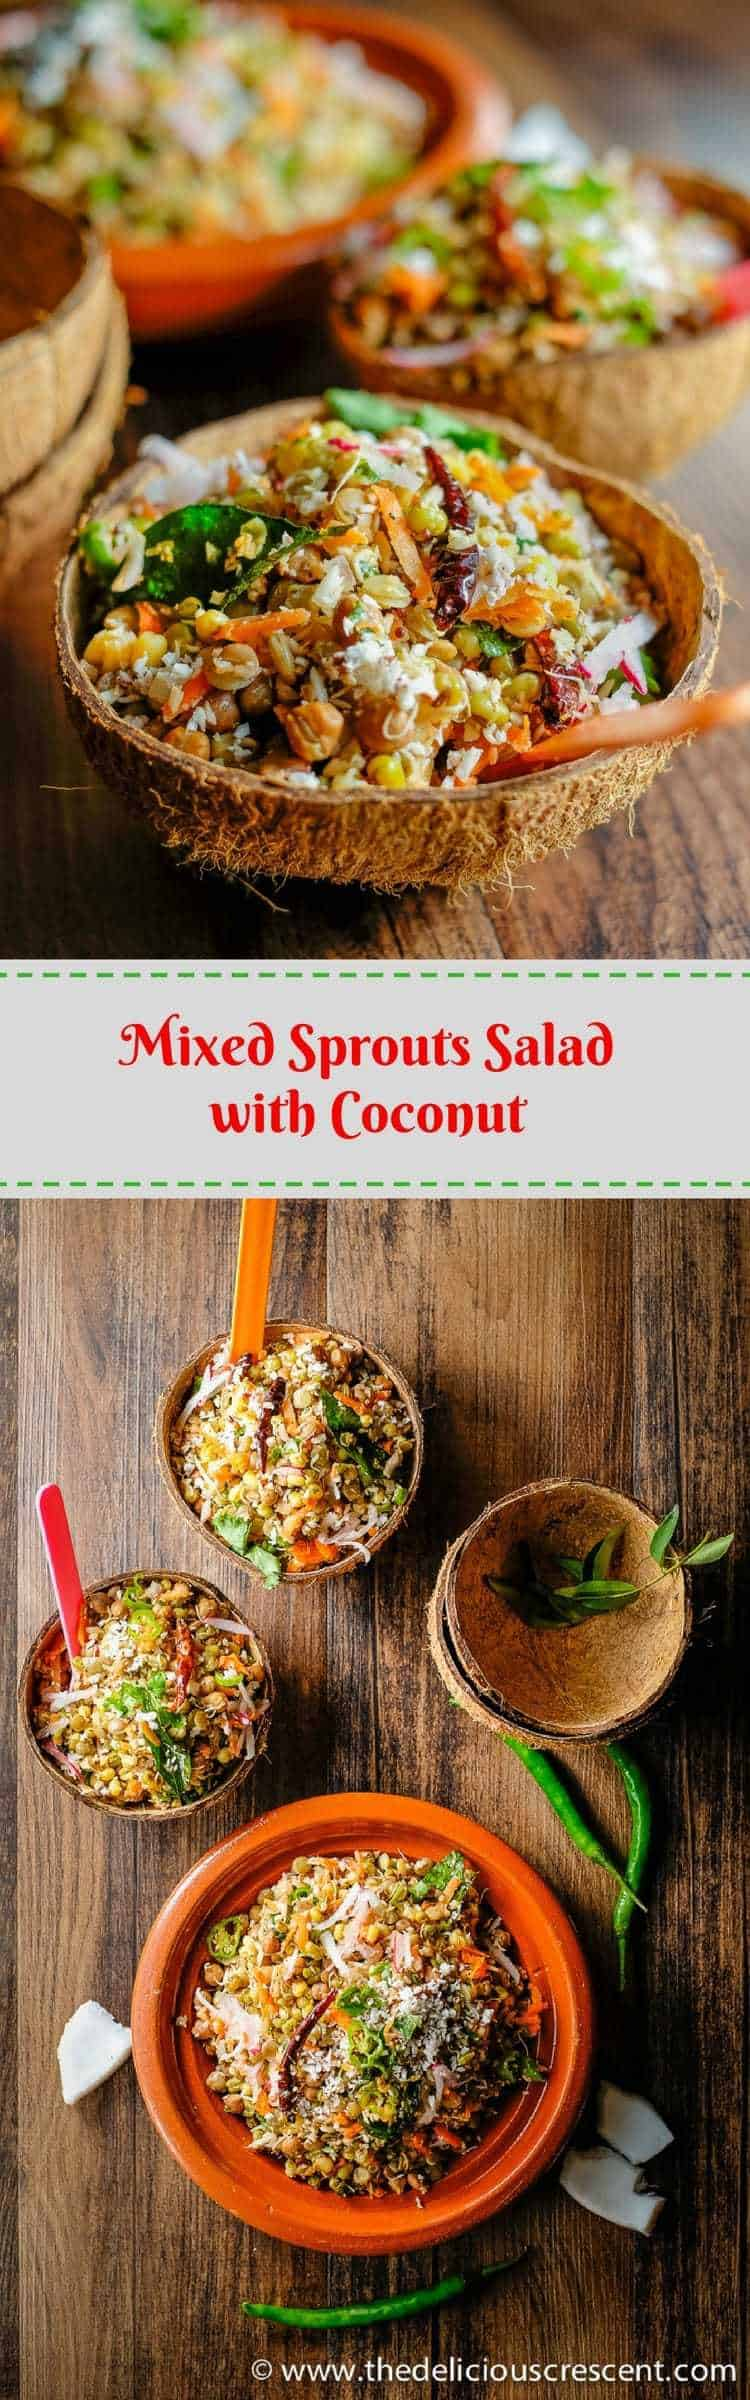 Mixed sprouts salad with coconut sundal the delicious crescent mixed sprouts salad with coconut infused with indian spices has a scrumptious earthy flavor forumfinder Gallery